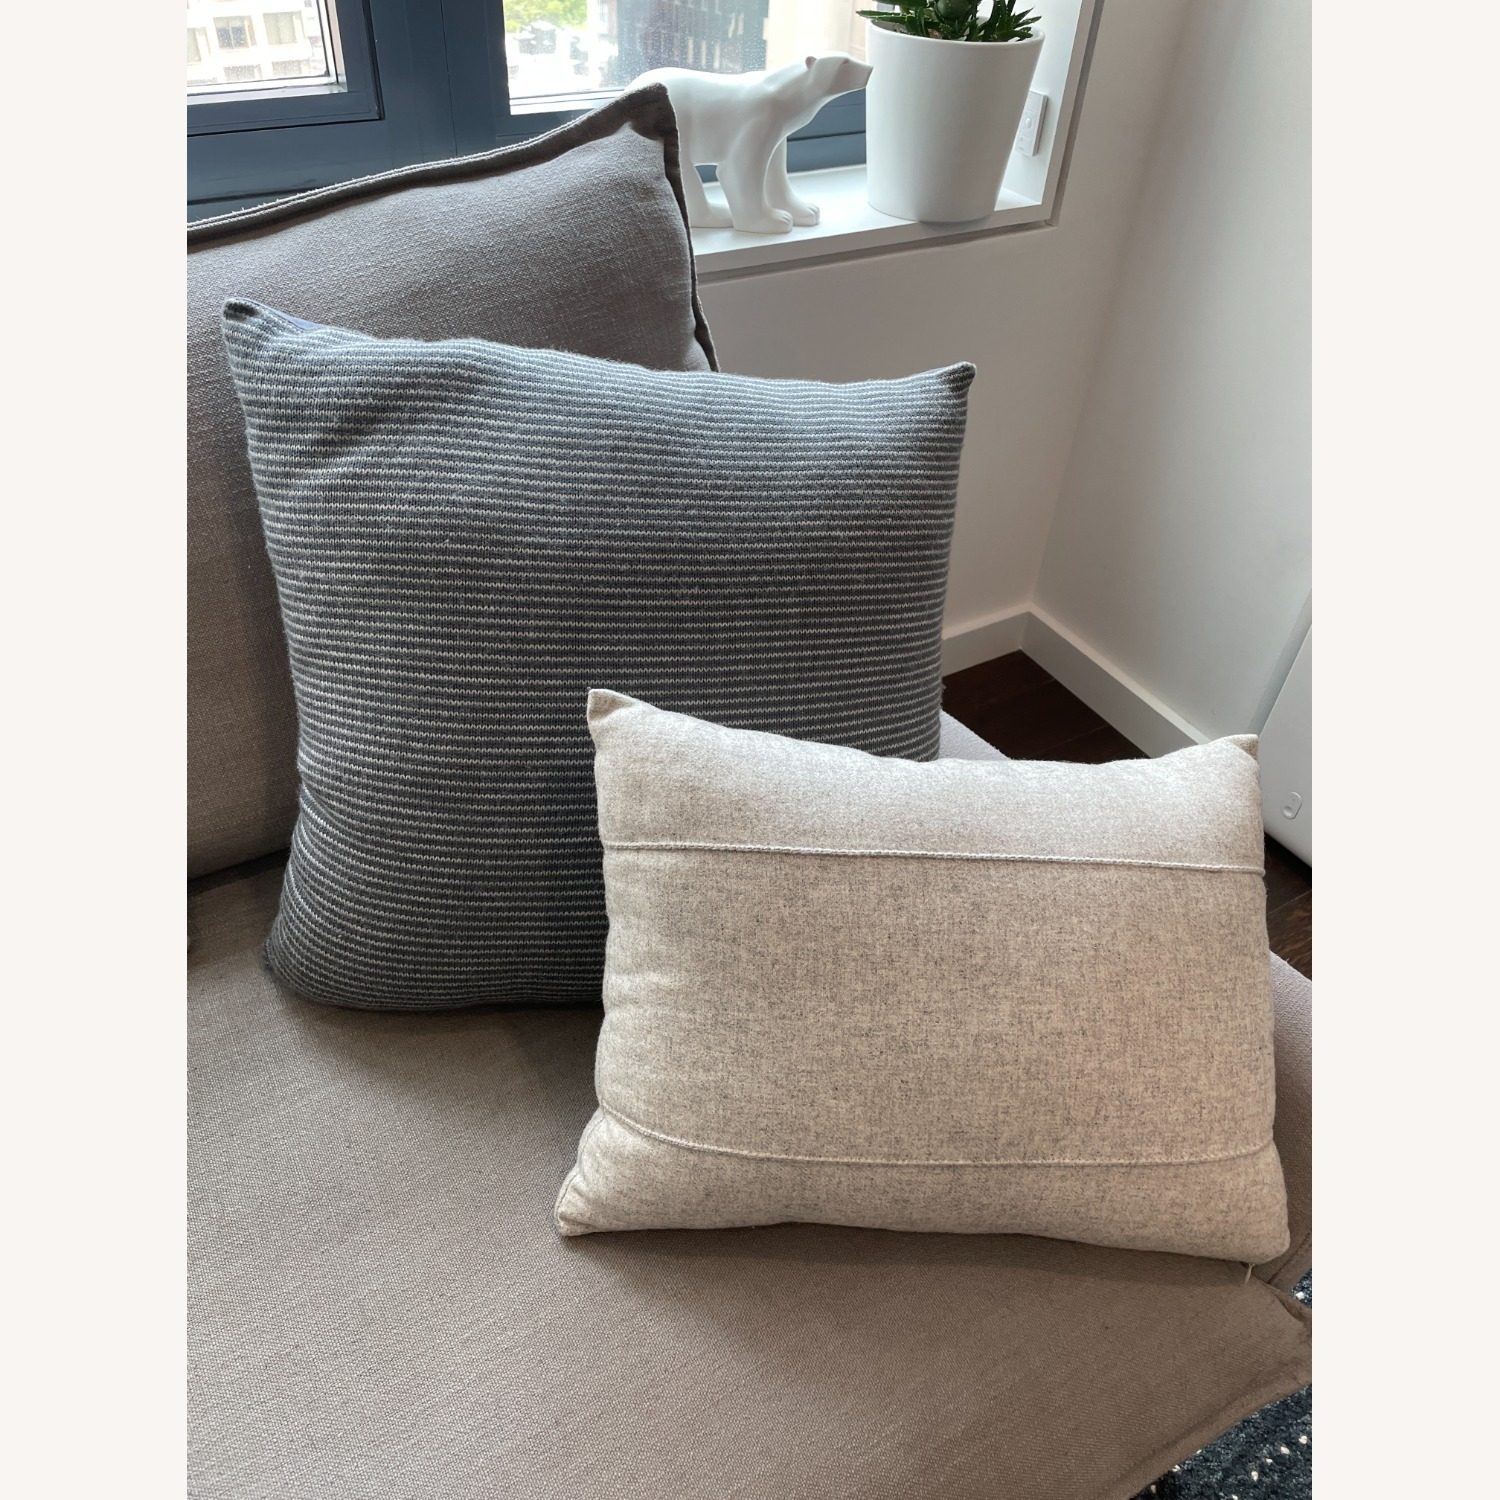 Kenneth Cole Home Set of Pillows - image-6